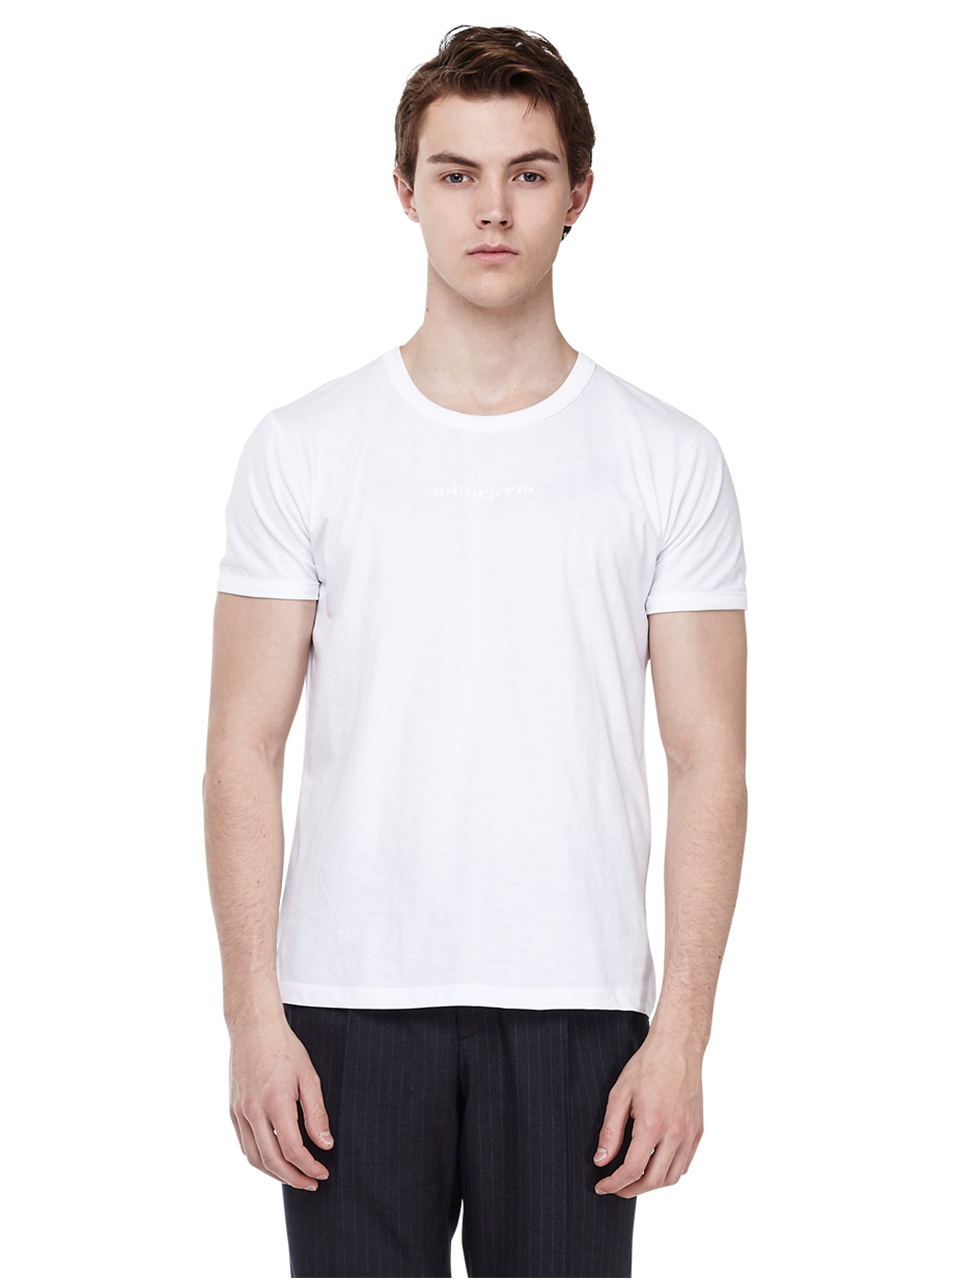 Guy fit t-shirts - White